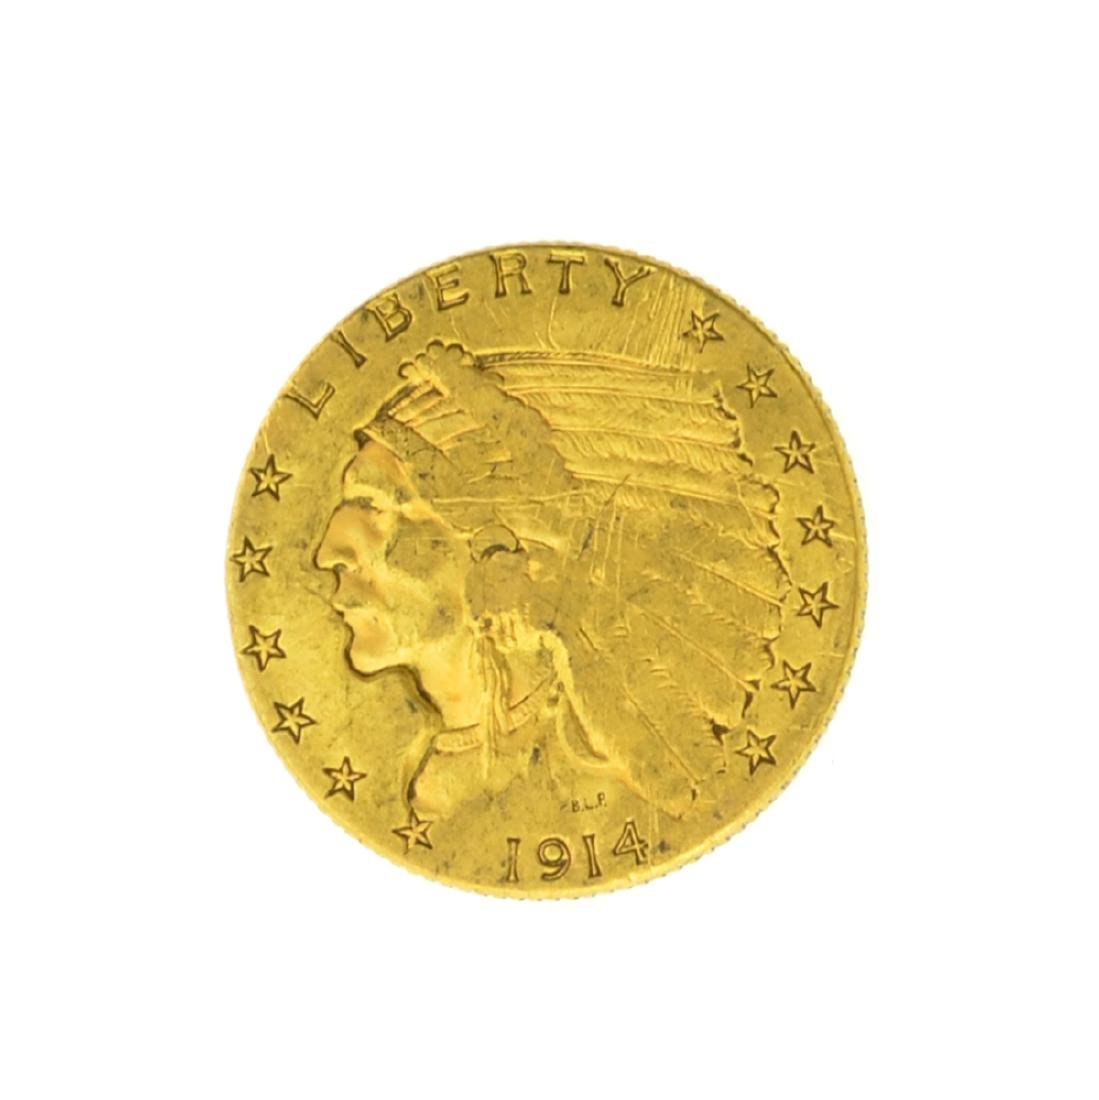 *1914 $2.50 U.S. Indian Head Gold Coin (JG)